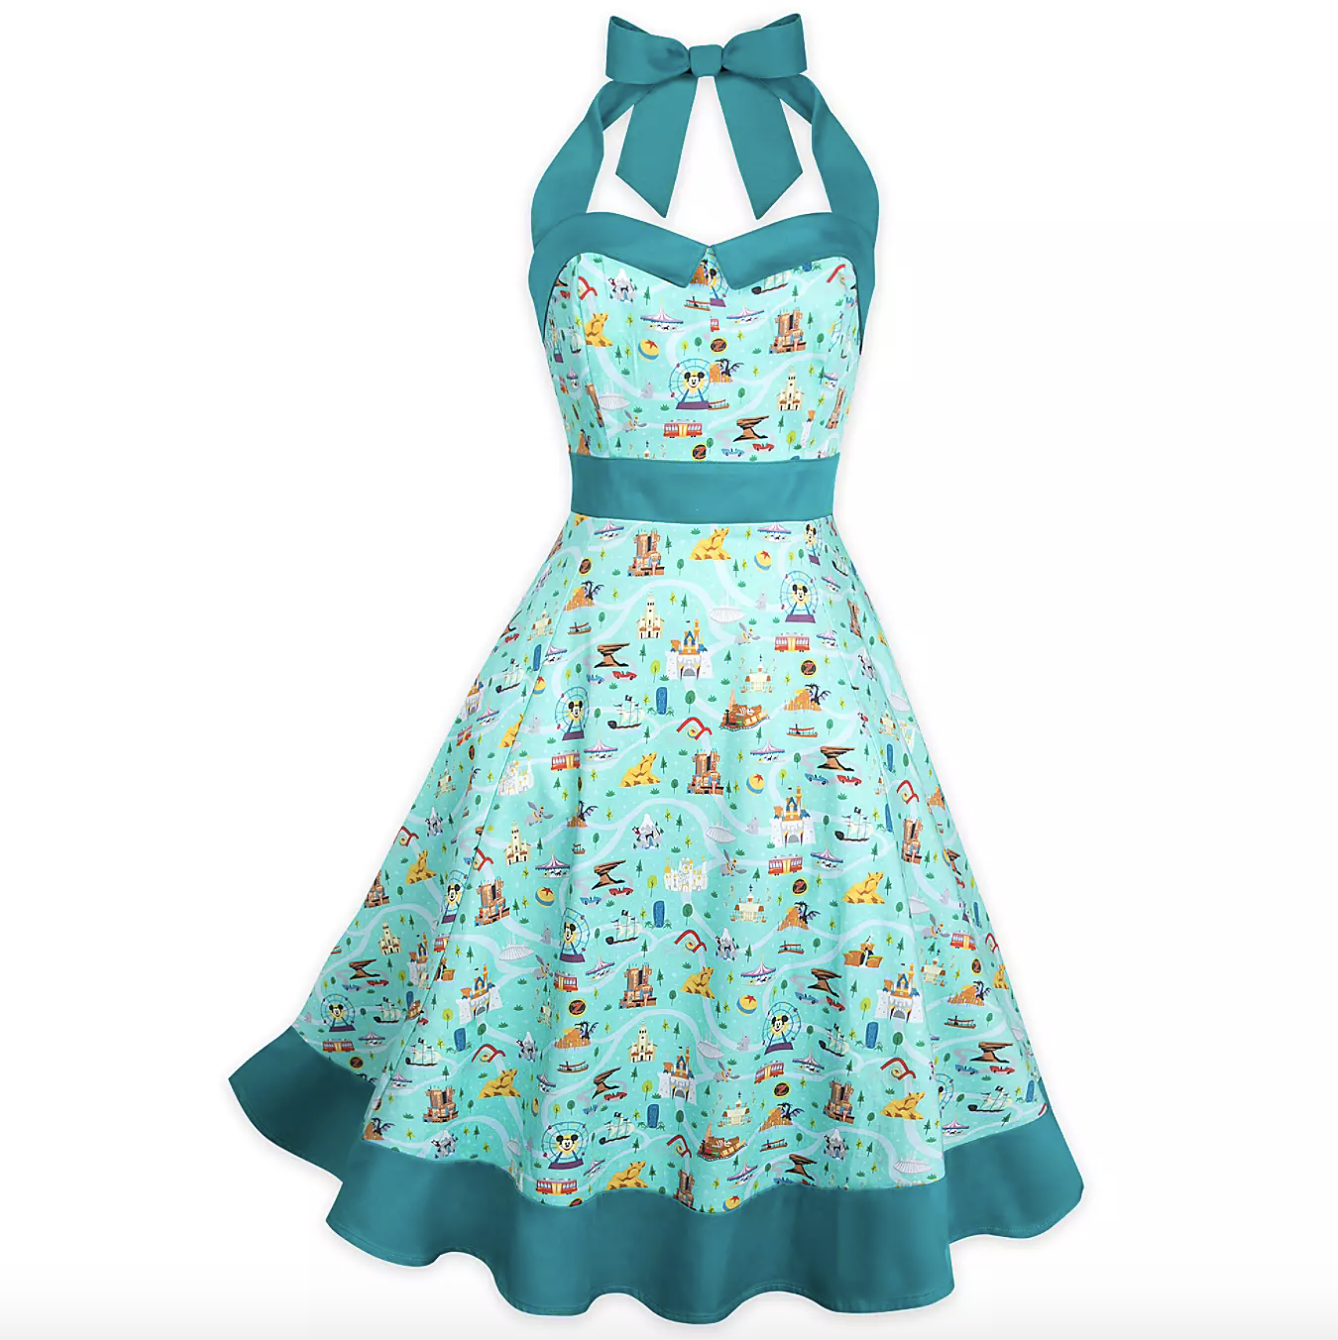 the dress, which is bright turquoise and has pockets and smocked panels